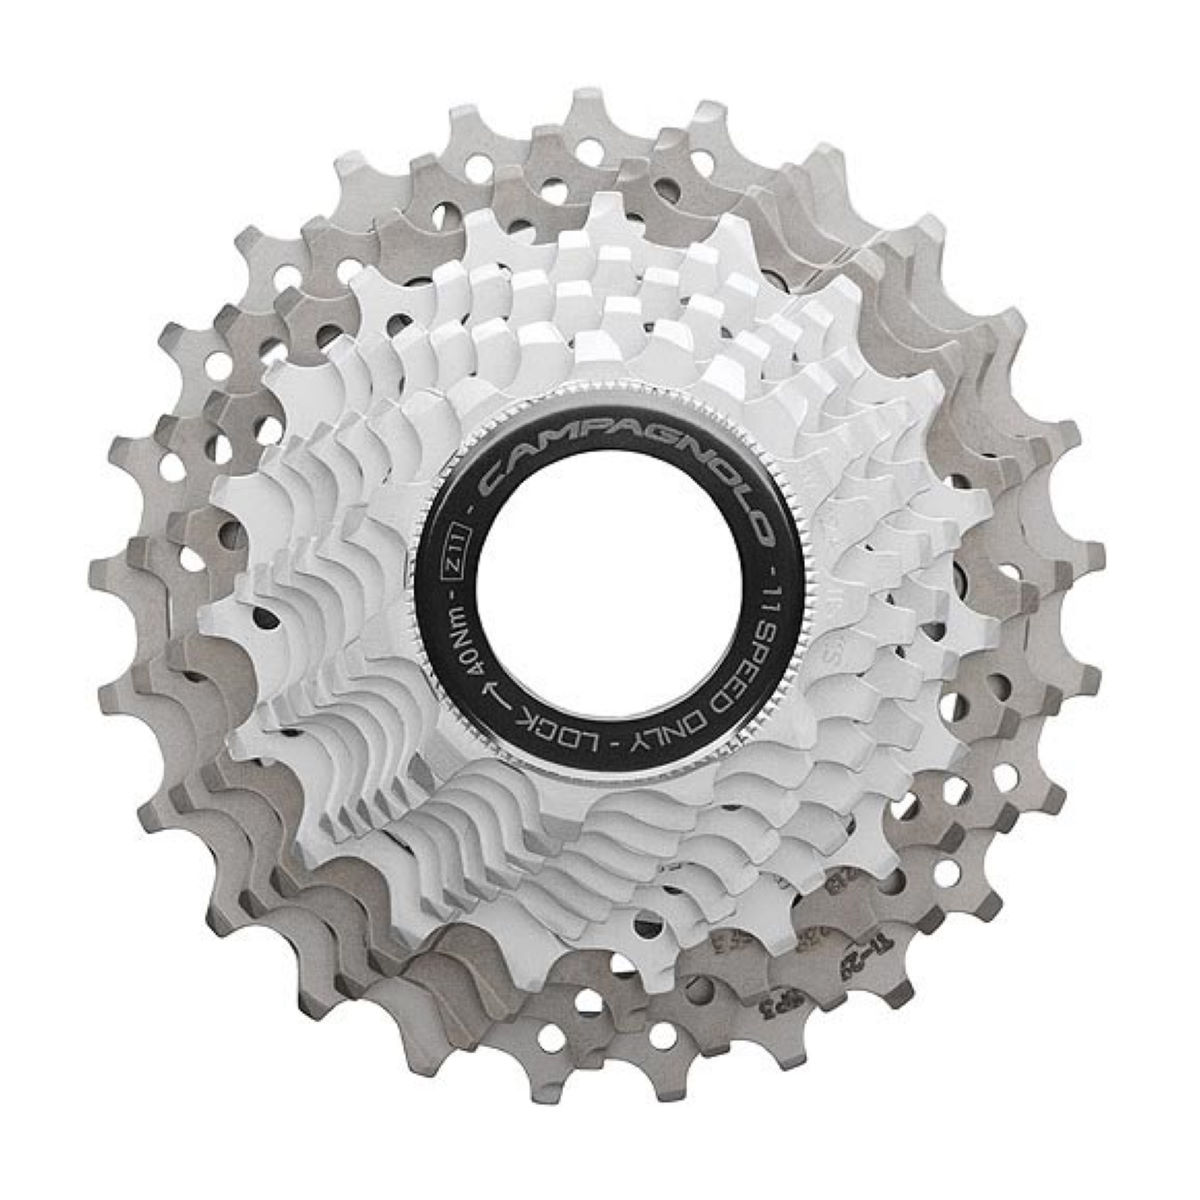 Cassette Campagnolo Record (11 vitesses, 11/27) - 11 Speed 11/27